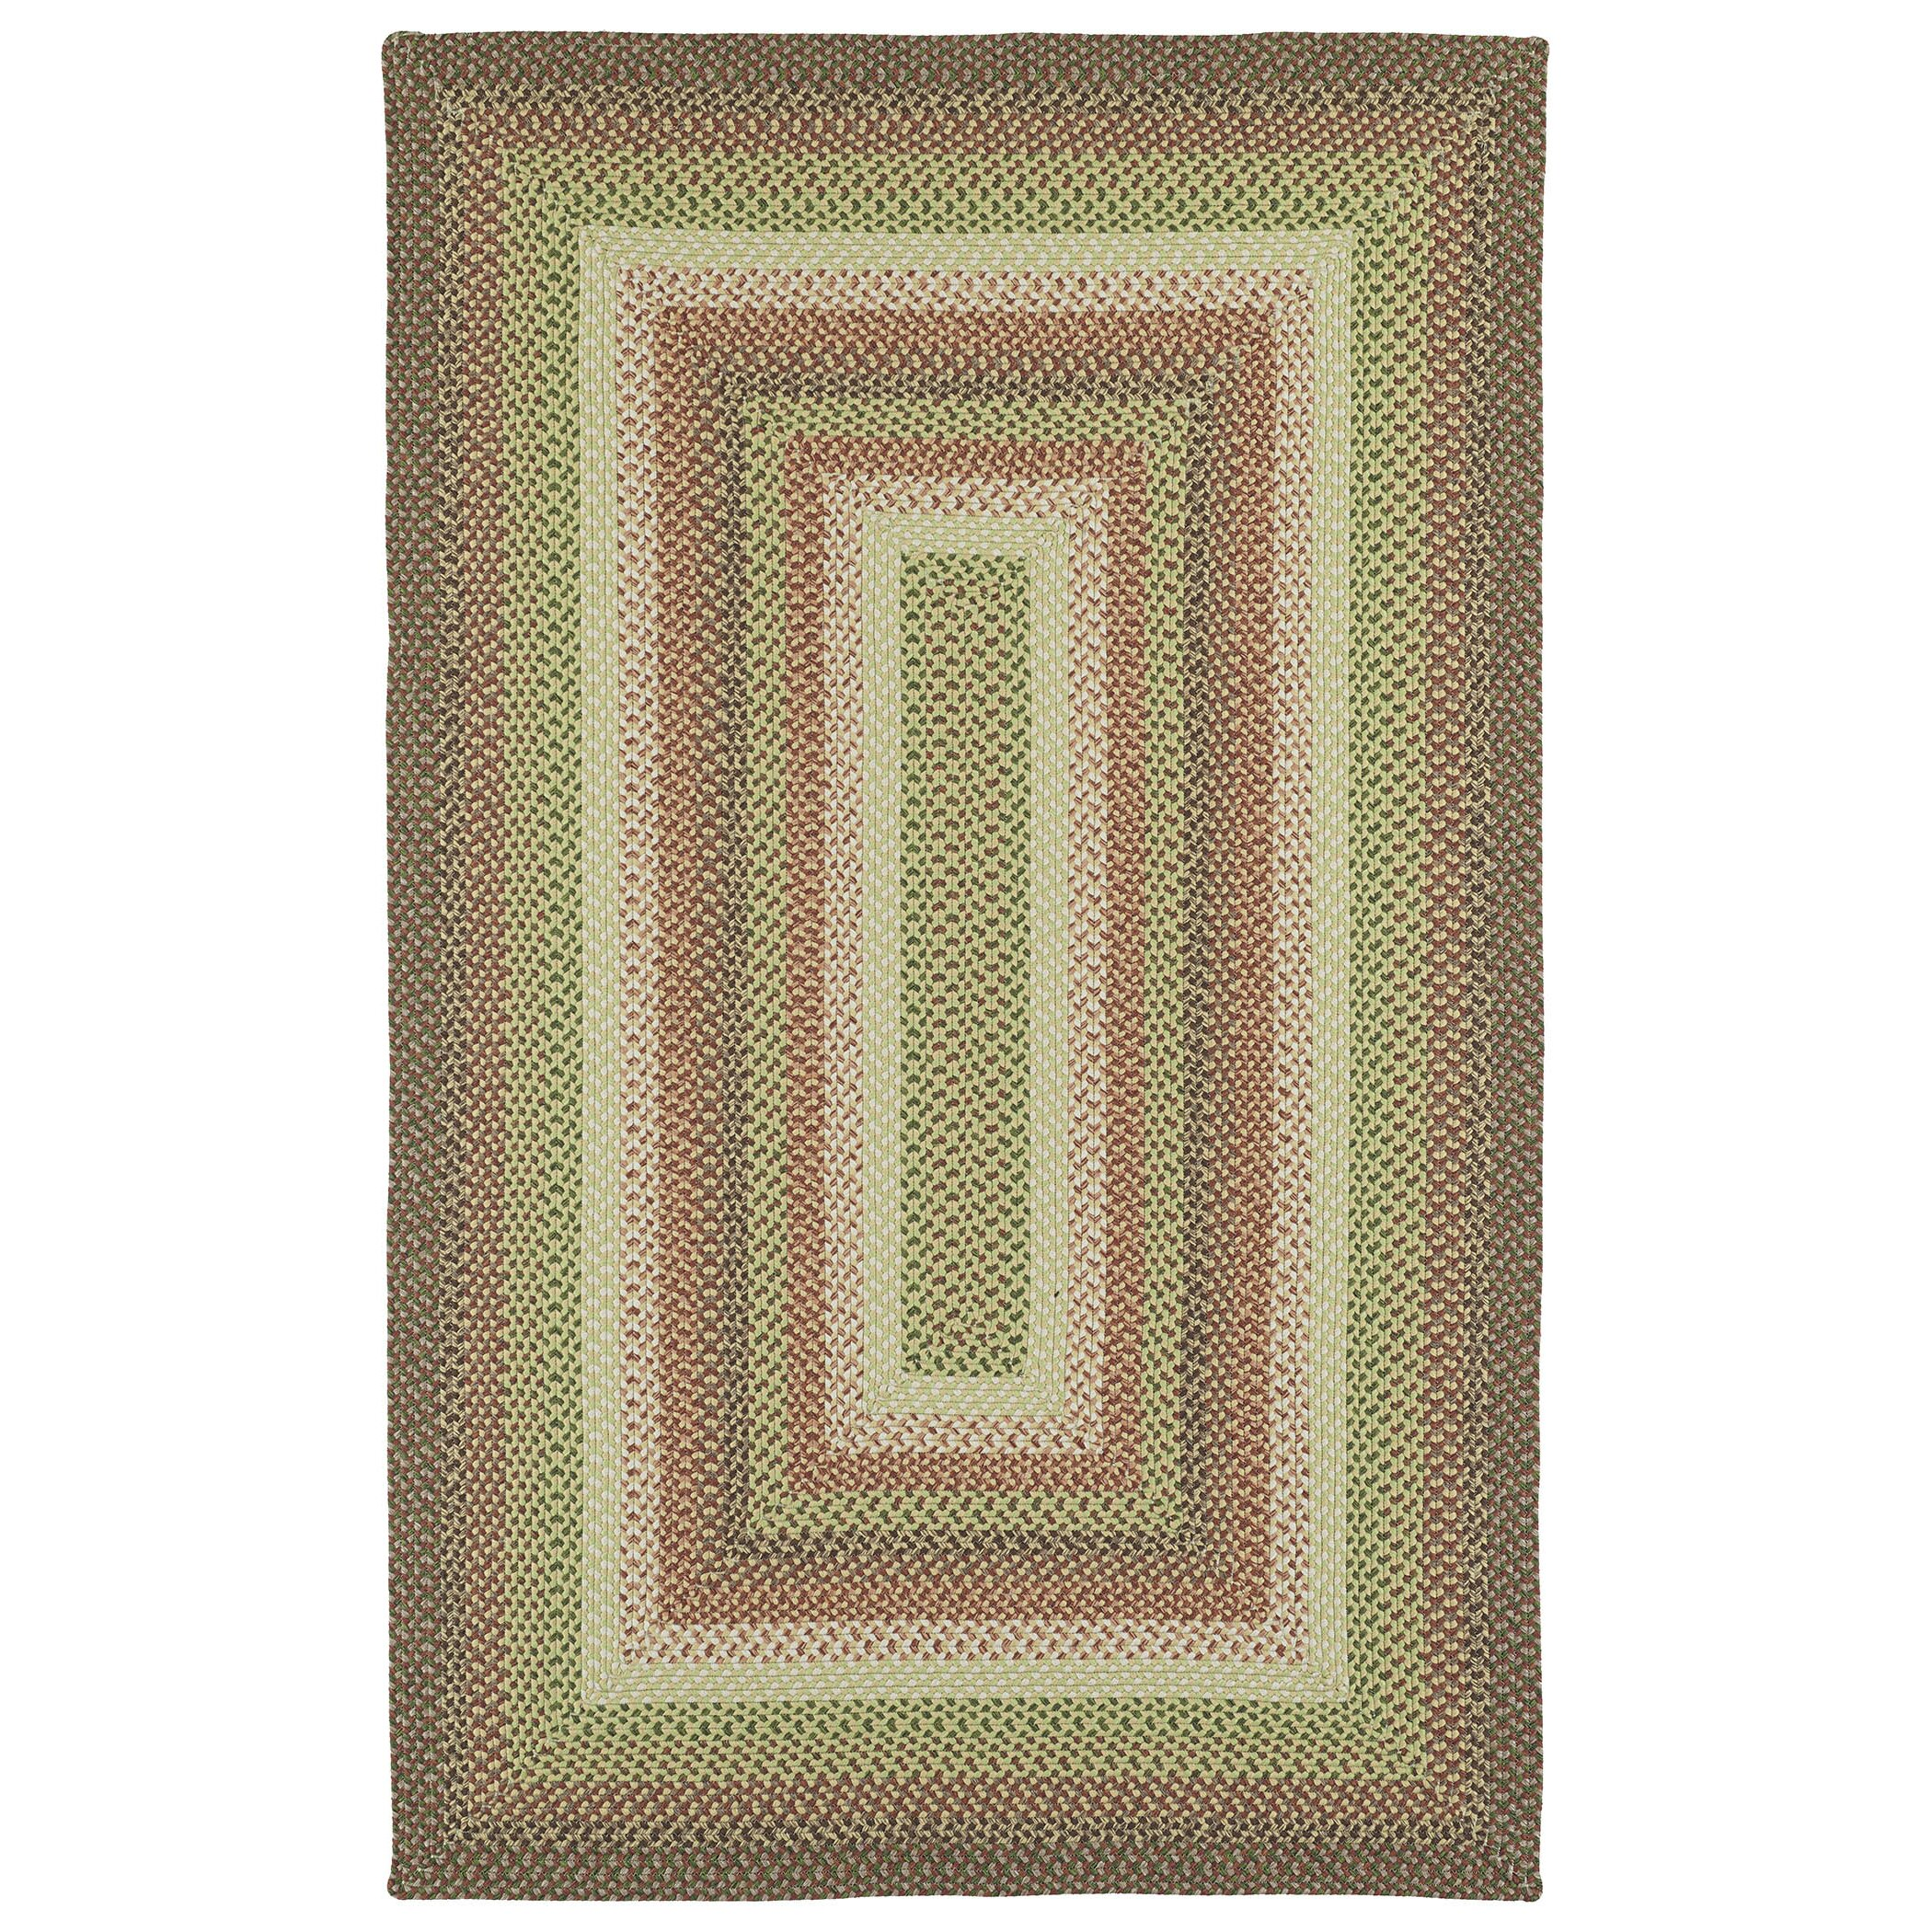 Kaleen bimini sage indoor outdoor area rug reviews wayfair for Indoor out door rugs